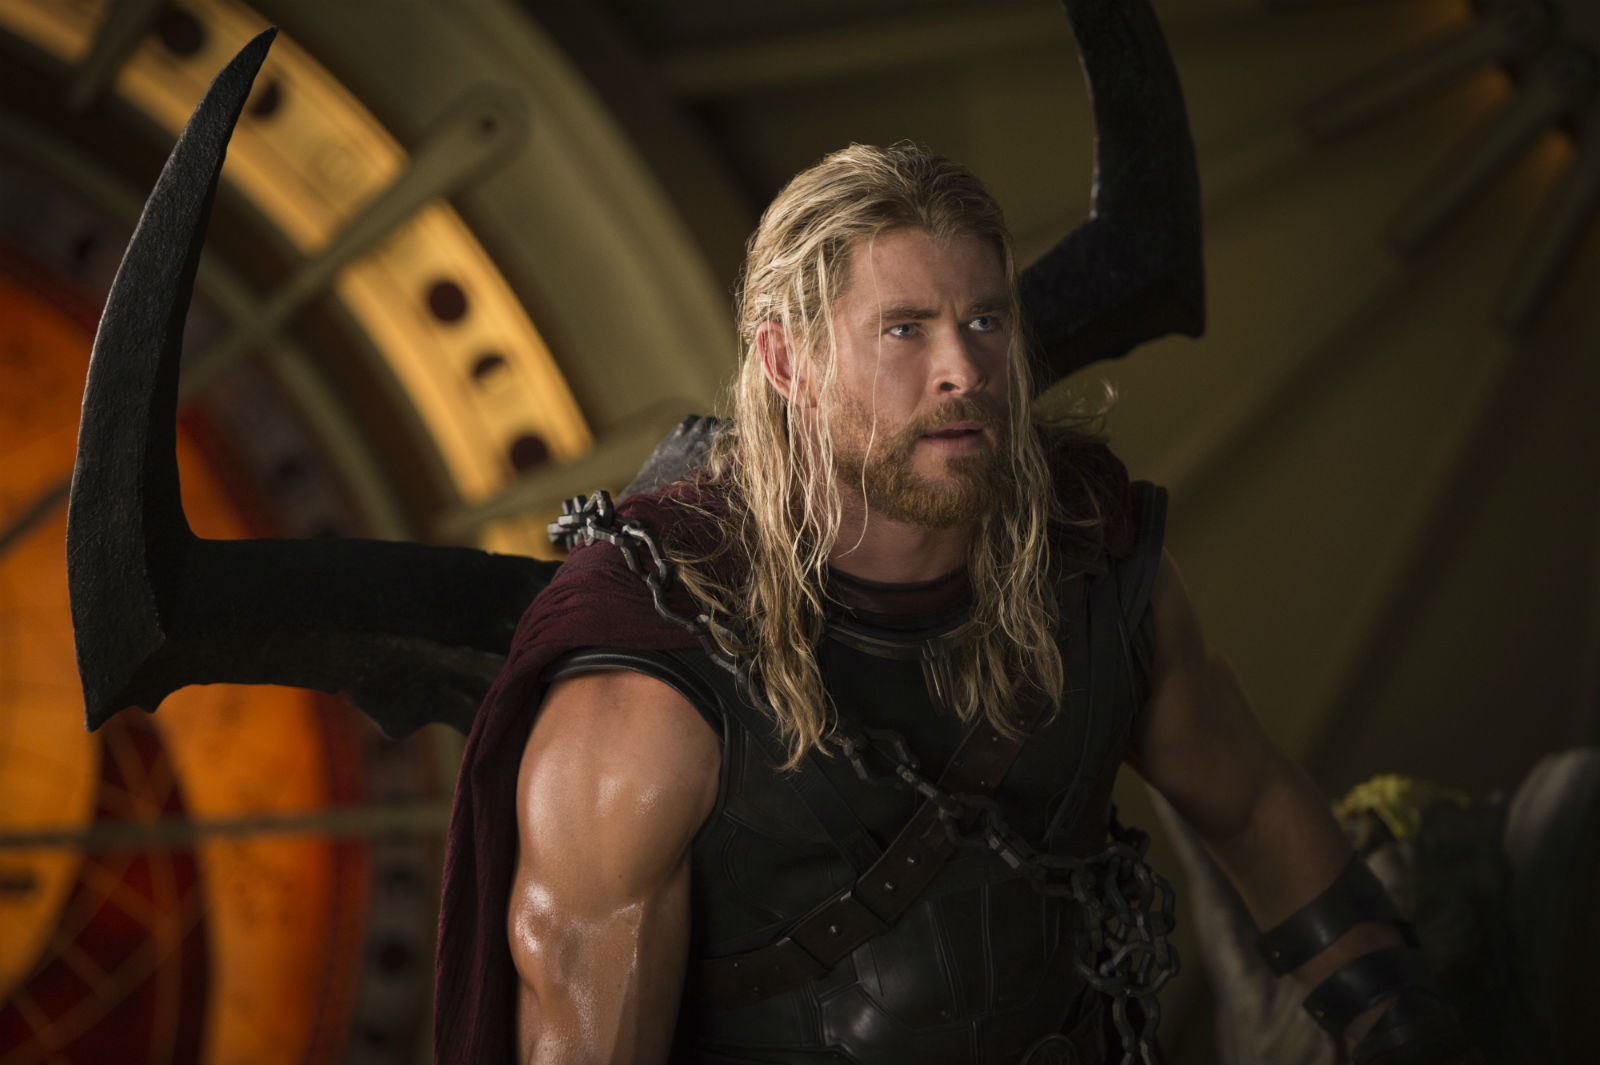 If the superhero thing doesn't work out, Chris Hemsworth could always try stand-up...